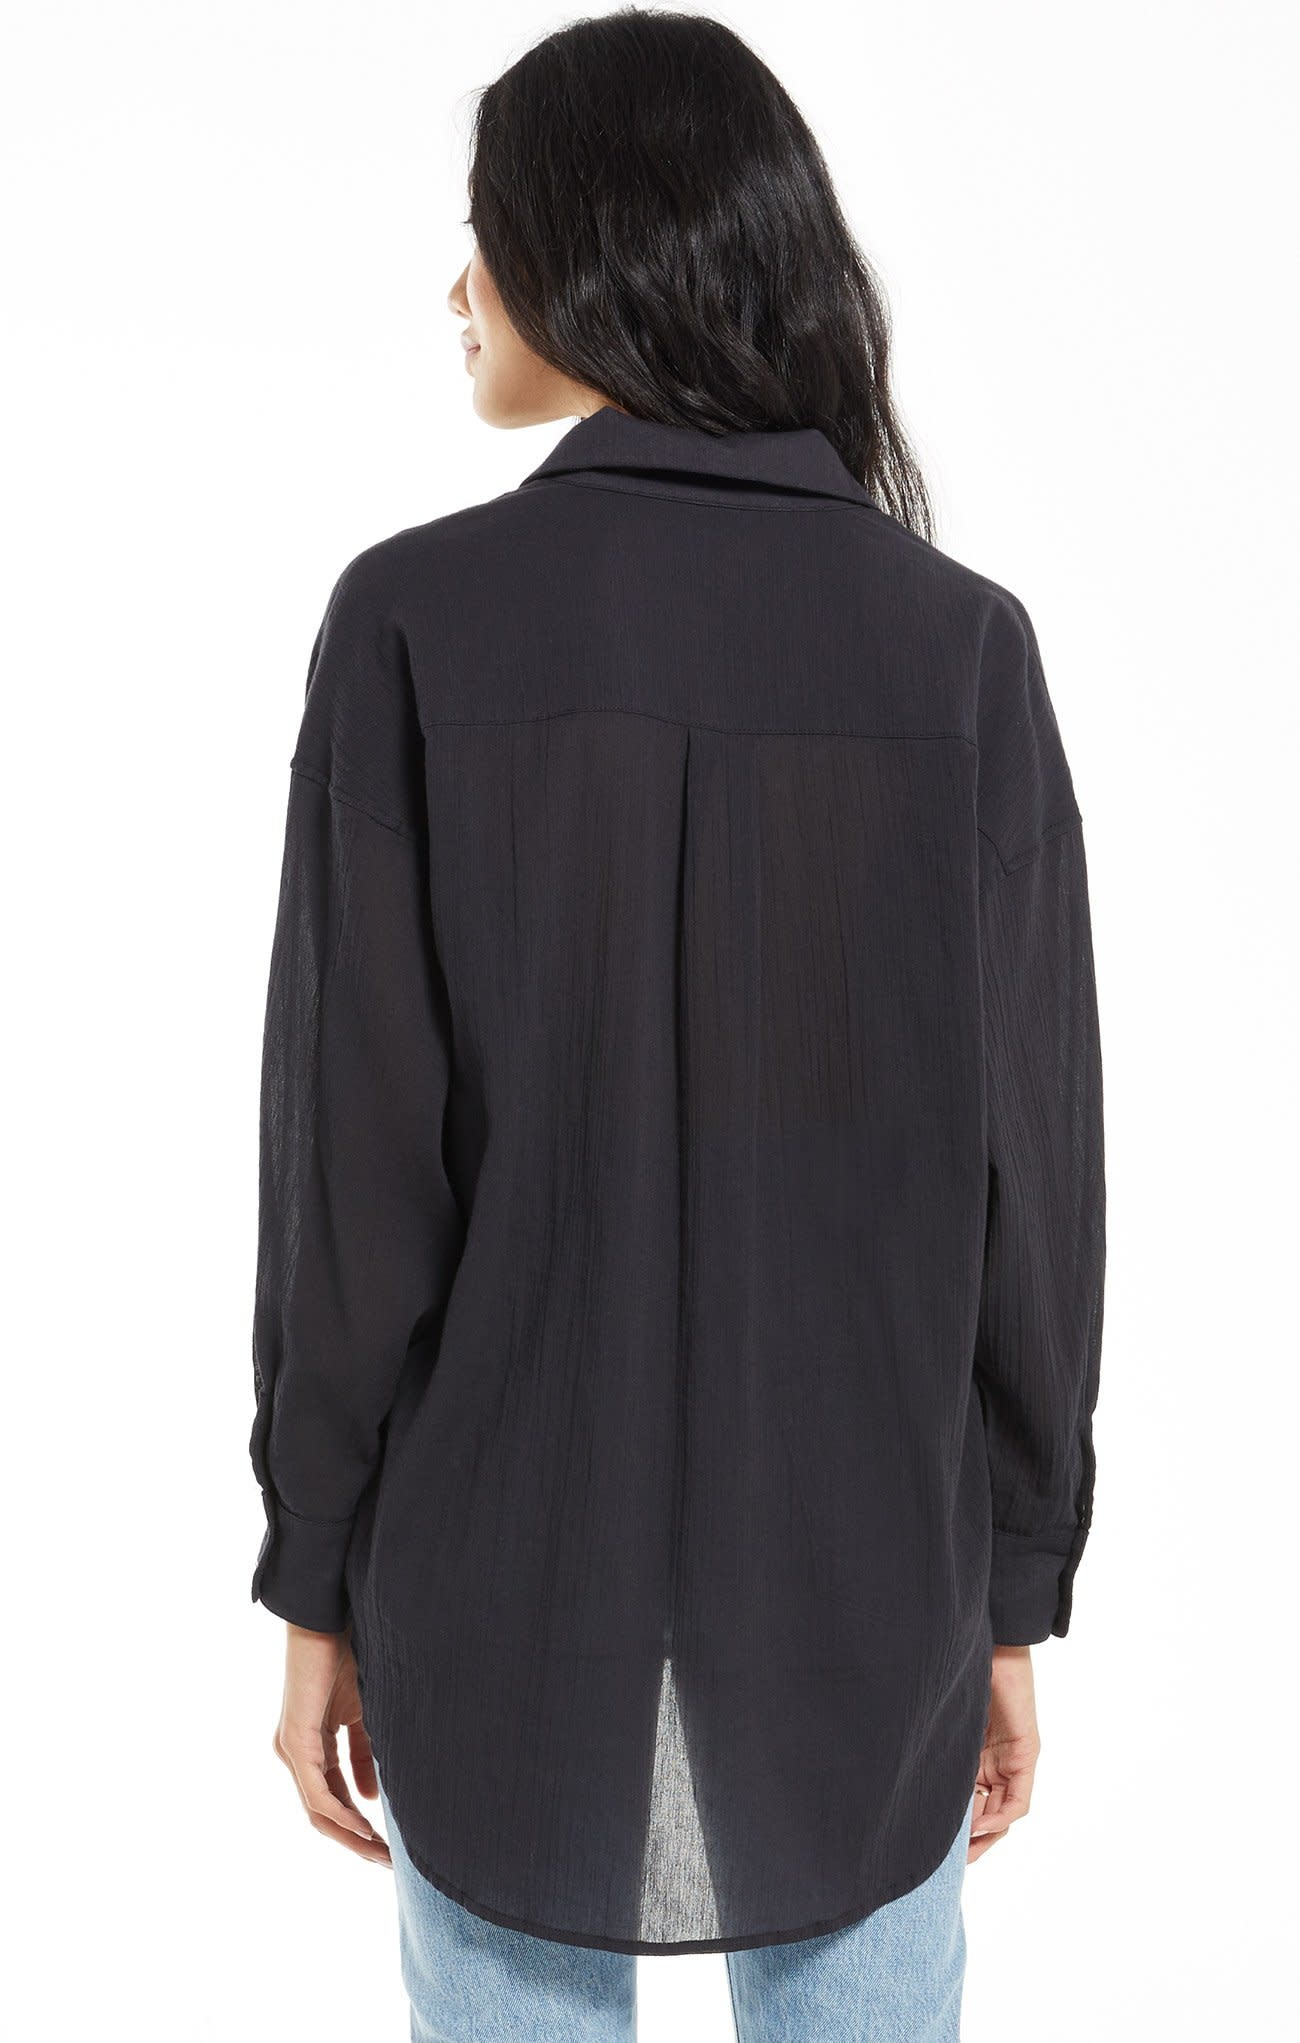 ZSUPPLY LALO BUTTON UP - BLACK